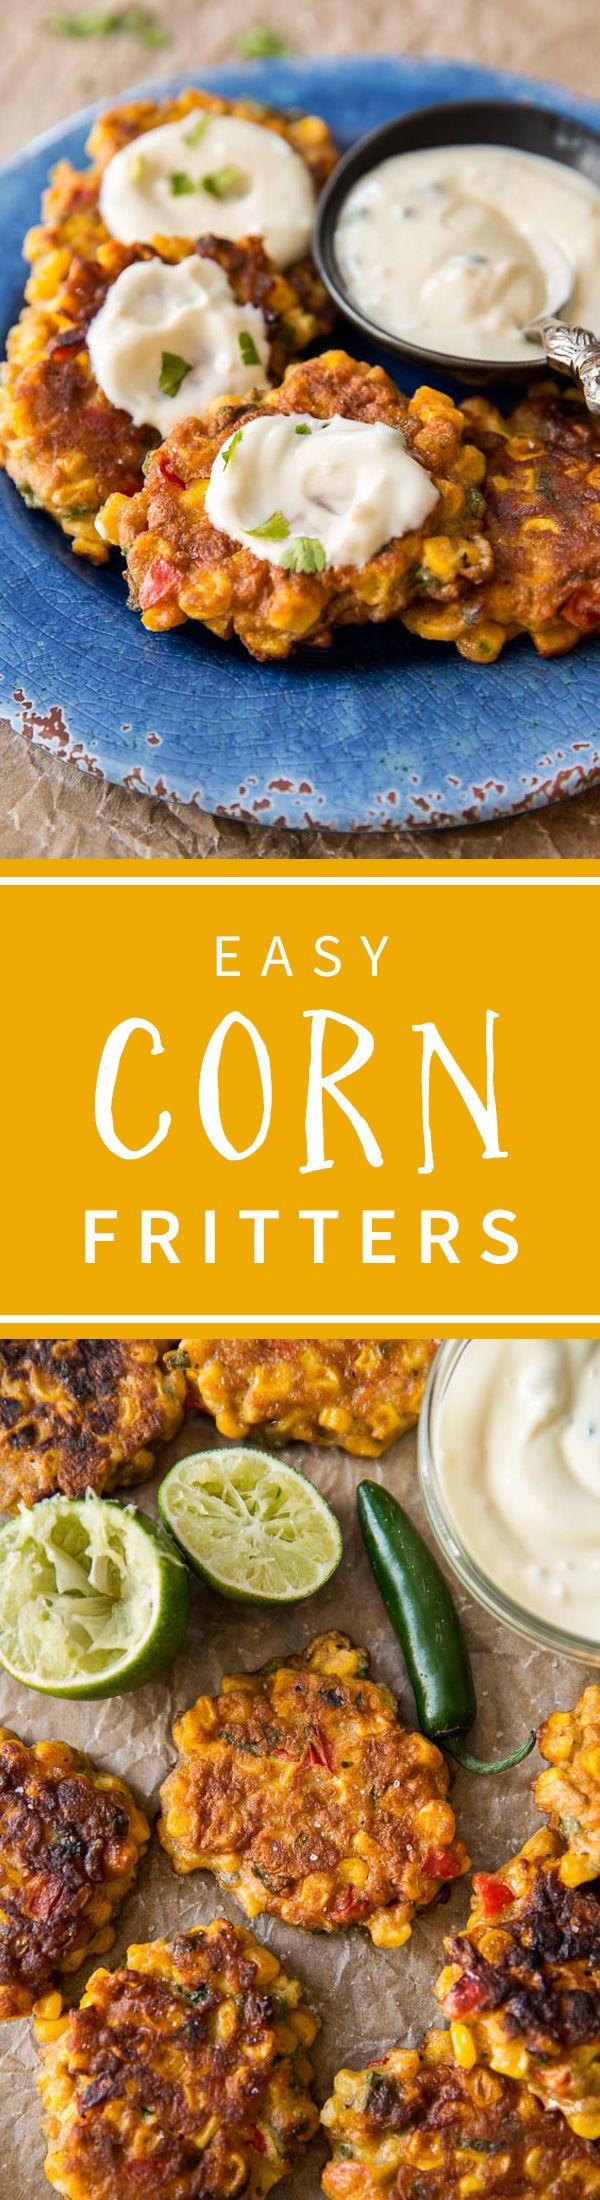 Savory and easy corn fritters!! Use your favorite spices and don't forget the honey jalapeño greek yogurt dip! Recipe on sallysbakingaddiction.com